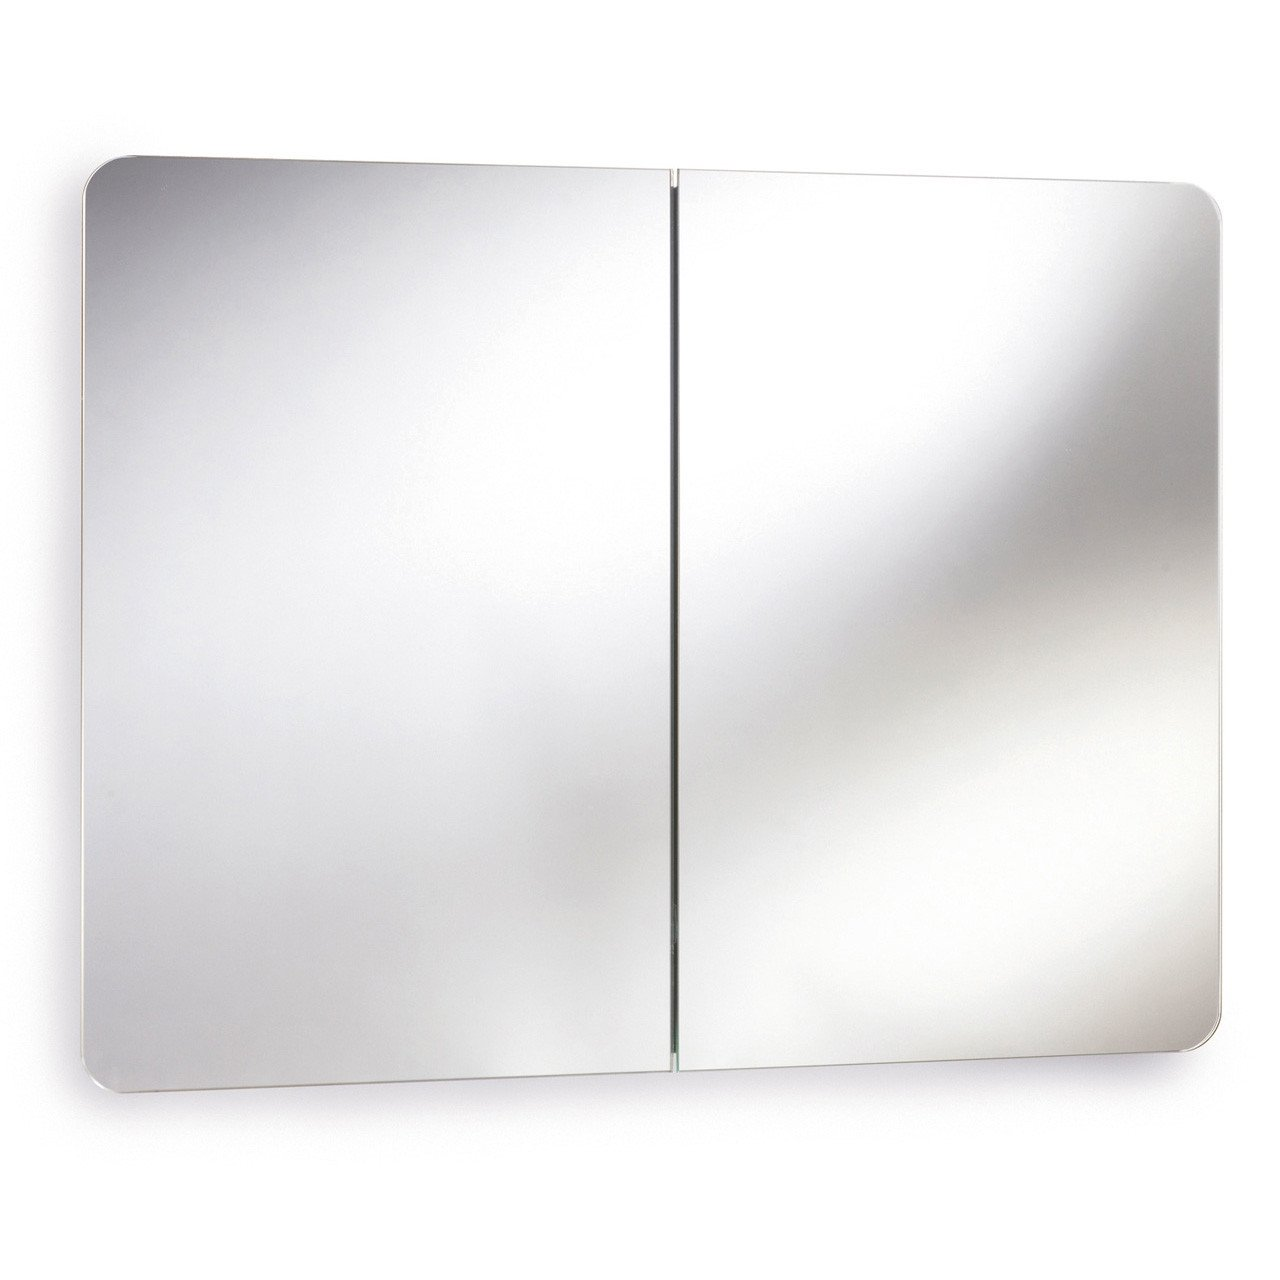 Premier Mimic Stainless Steel Mirrored Cabinet with Hinged Doors - LQ383